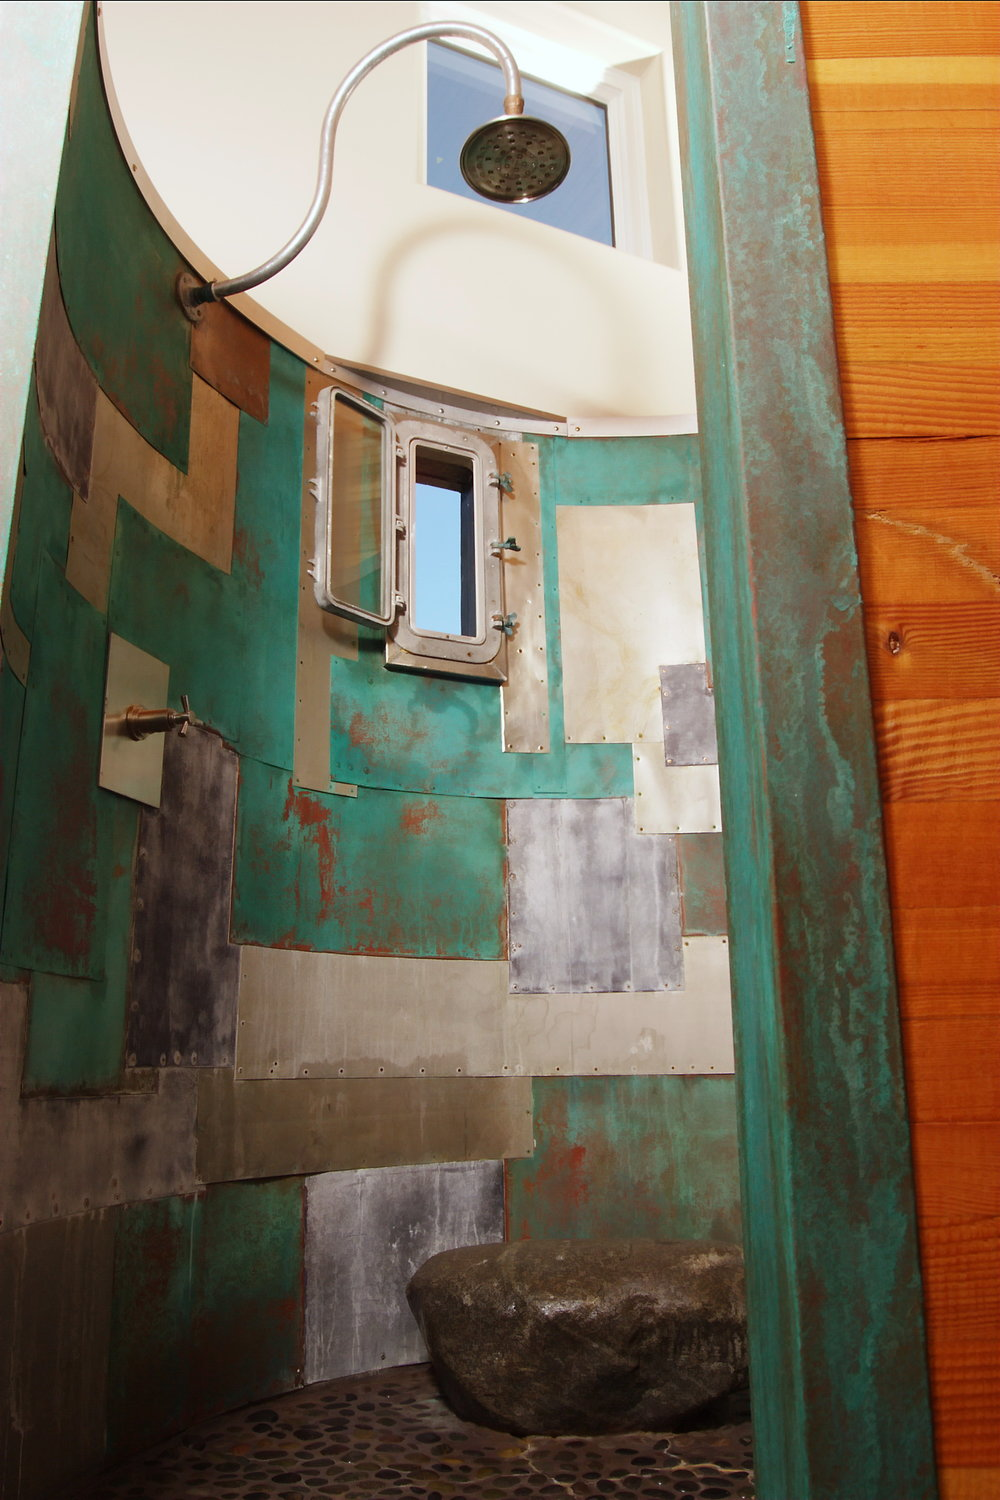 Patchwork Oxidized Copper Circular Shower with Outdoor Porthole